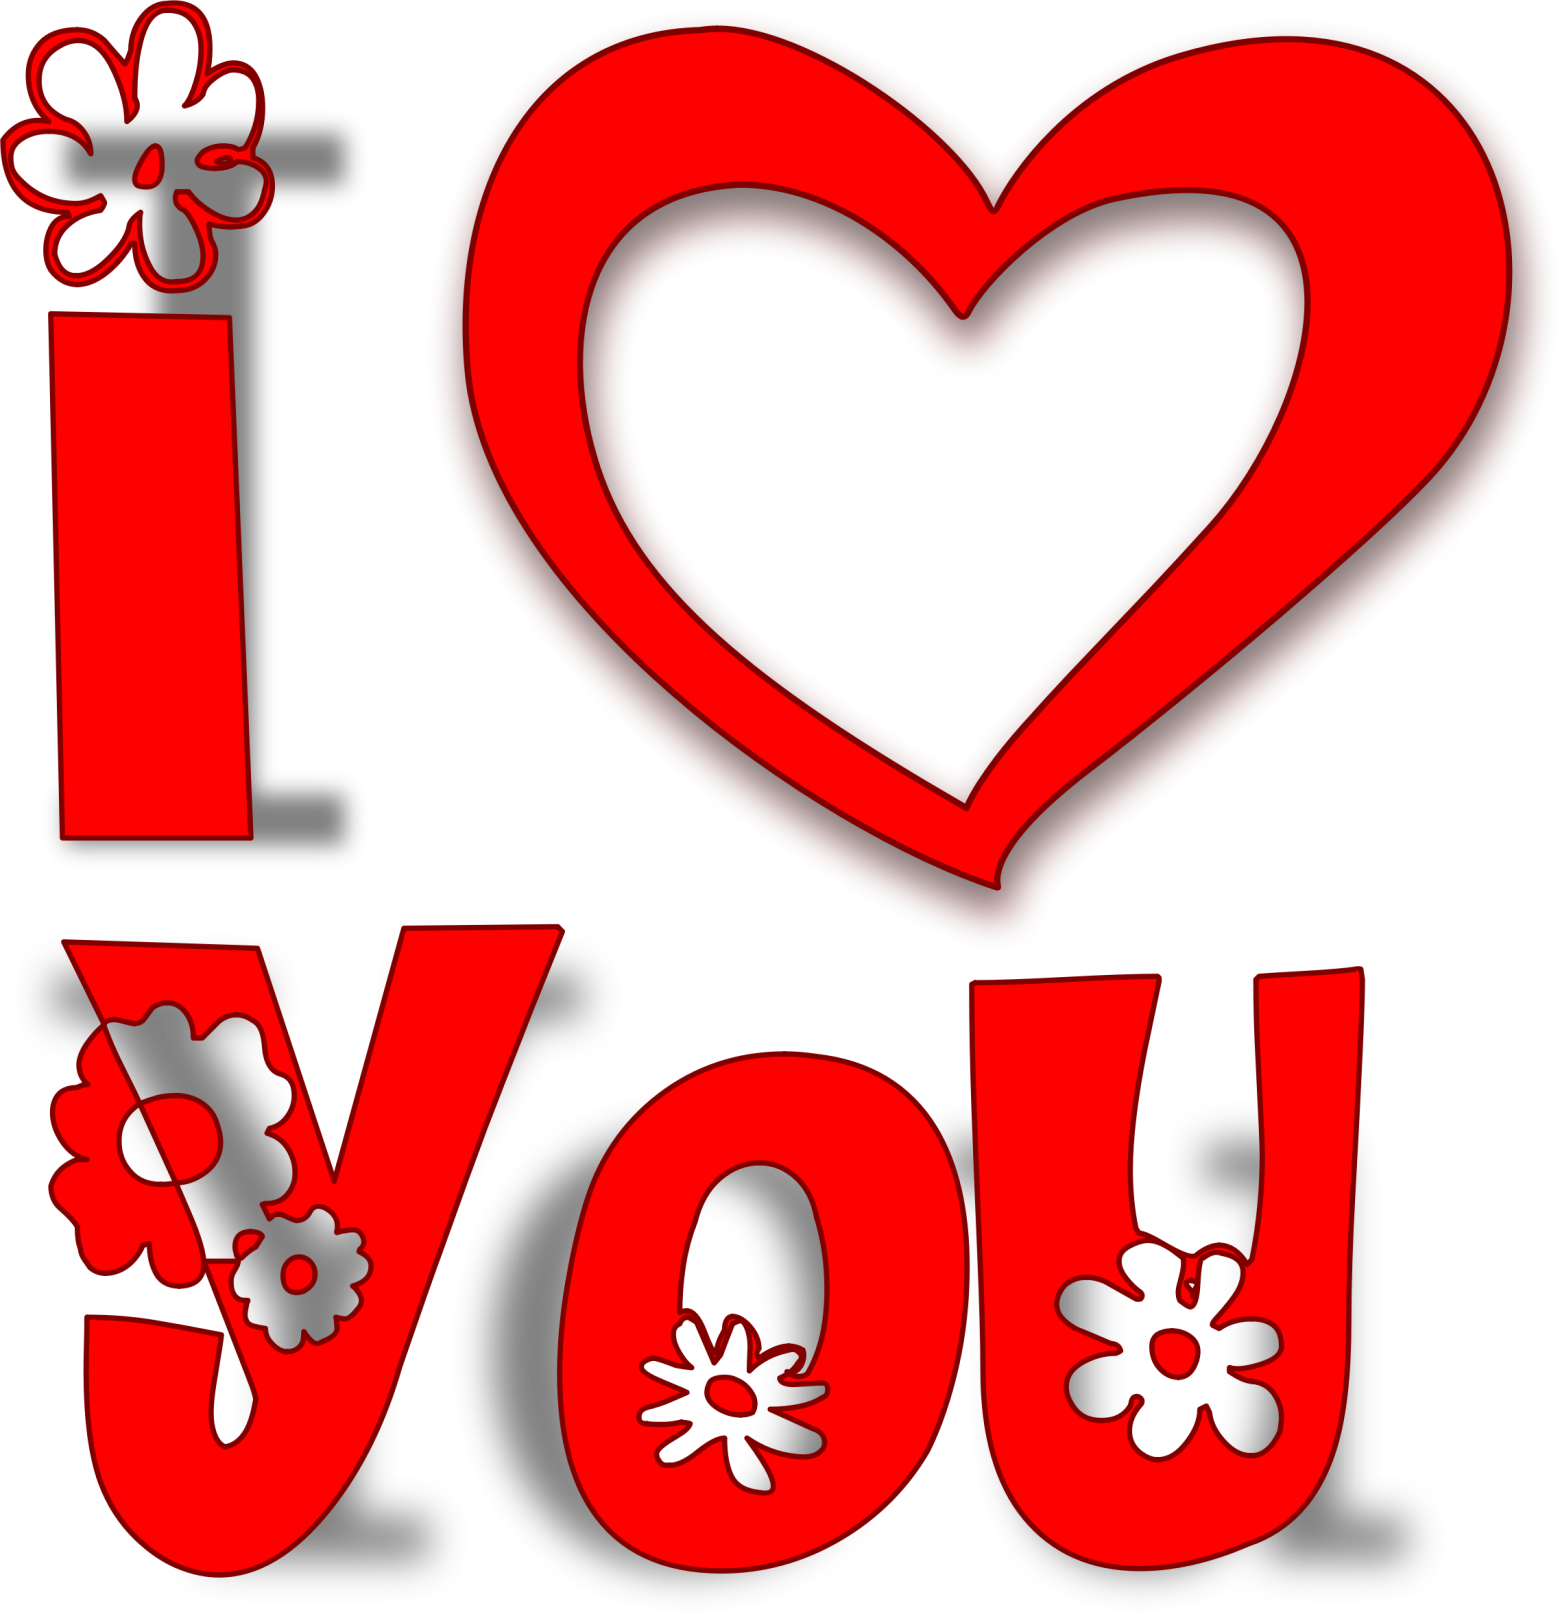 Clipart coeur love amour i love you je t aime images - Clipart amour ...